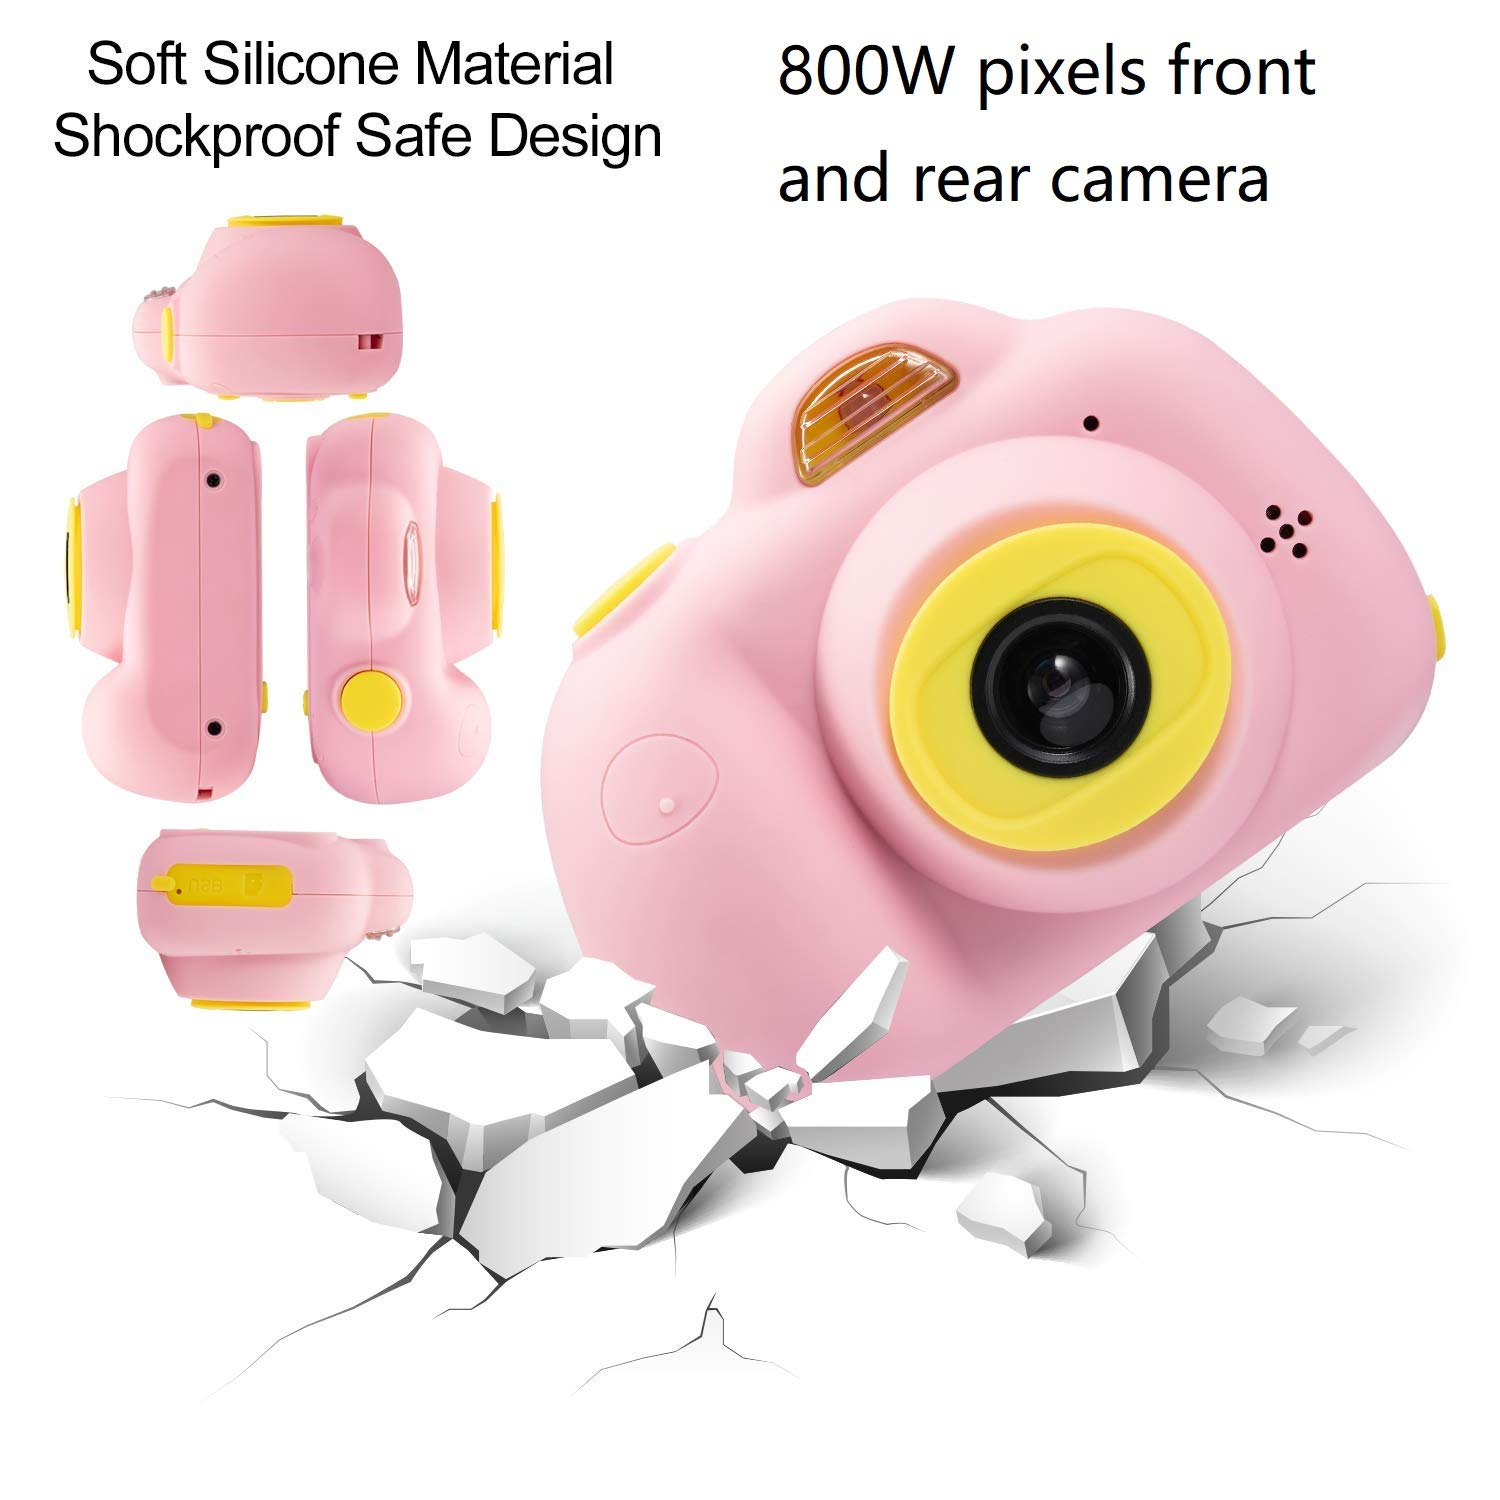 DIIGIITO Kids Camera Gifts for 4-8 Year Old Girls, Shockproof Cameras Great Gift Mini Child Camcorder for Little Girl with Soft Silicone Shell for Outdoor Play,(16GB Memory Card Included) (Pink) by DIIGIITO (Image #2)